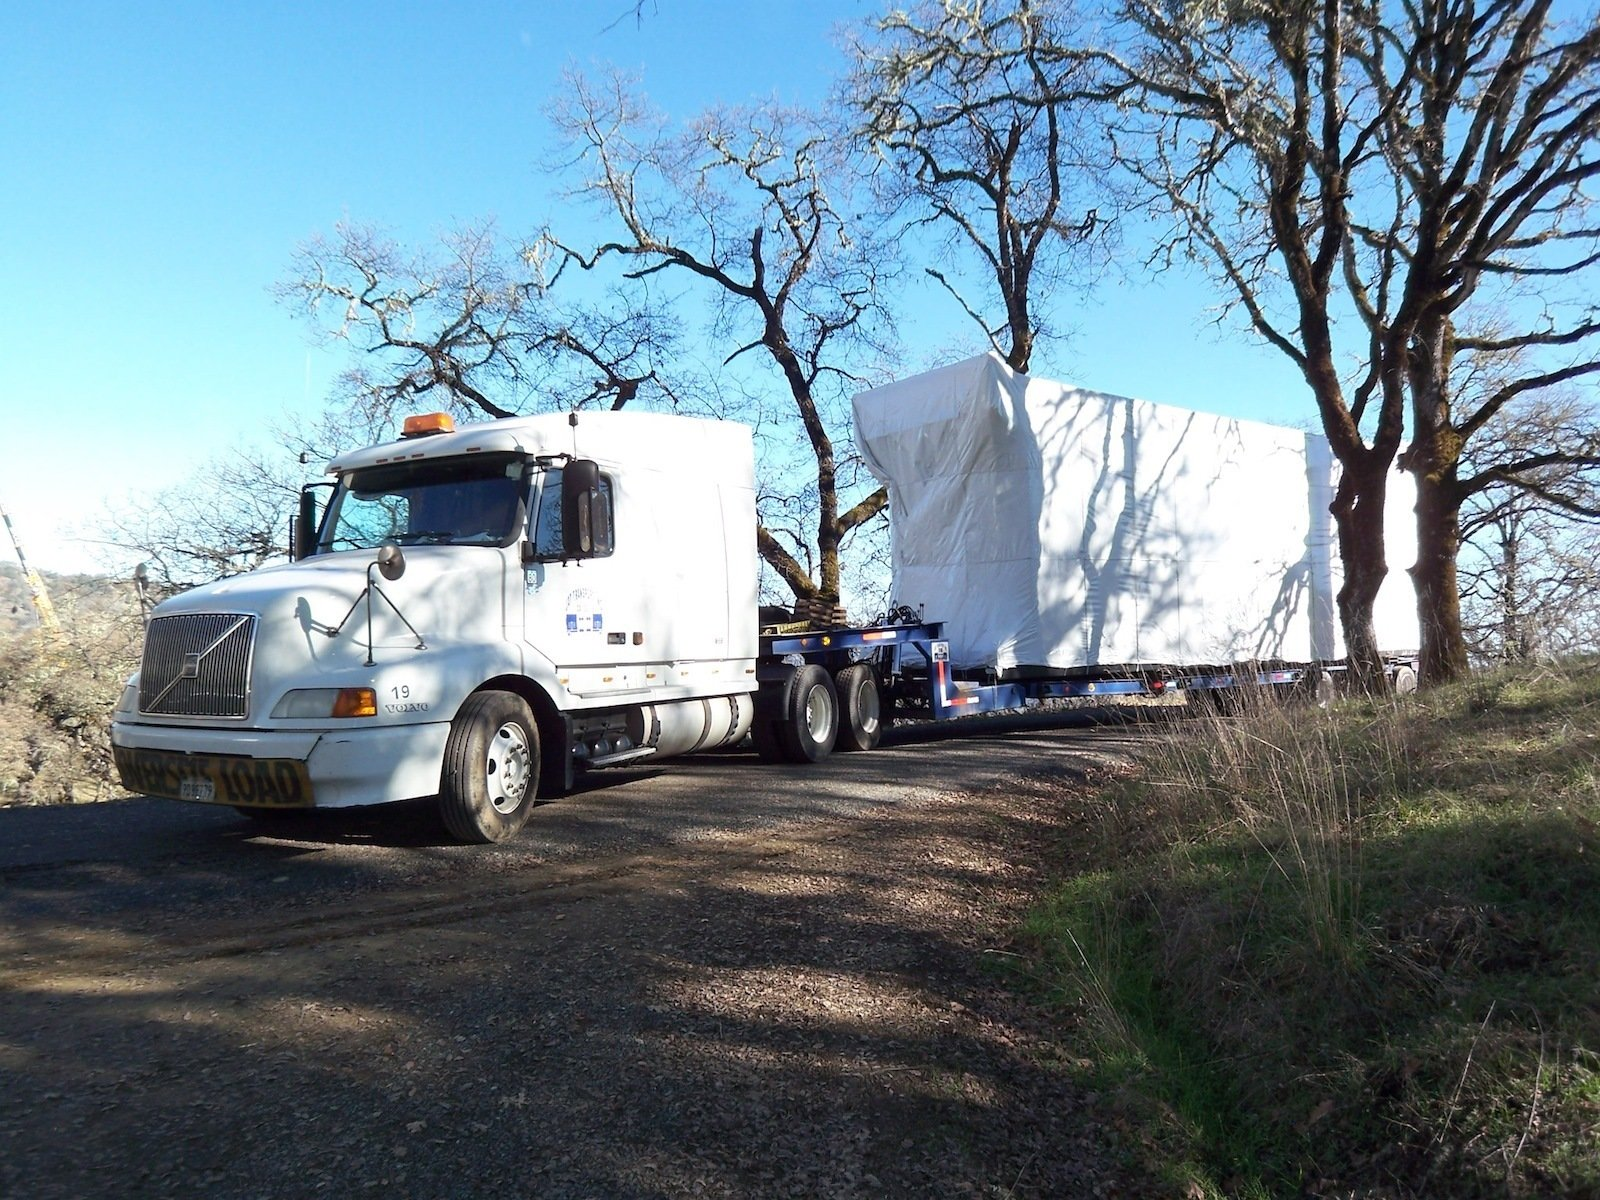 Here's the first module as it arrived at the site early in the morning.  Building a Prefab House by Jaime Gillin